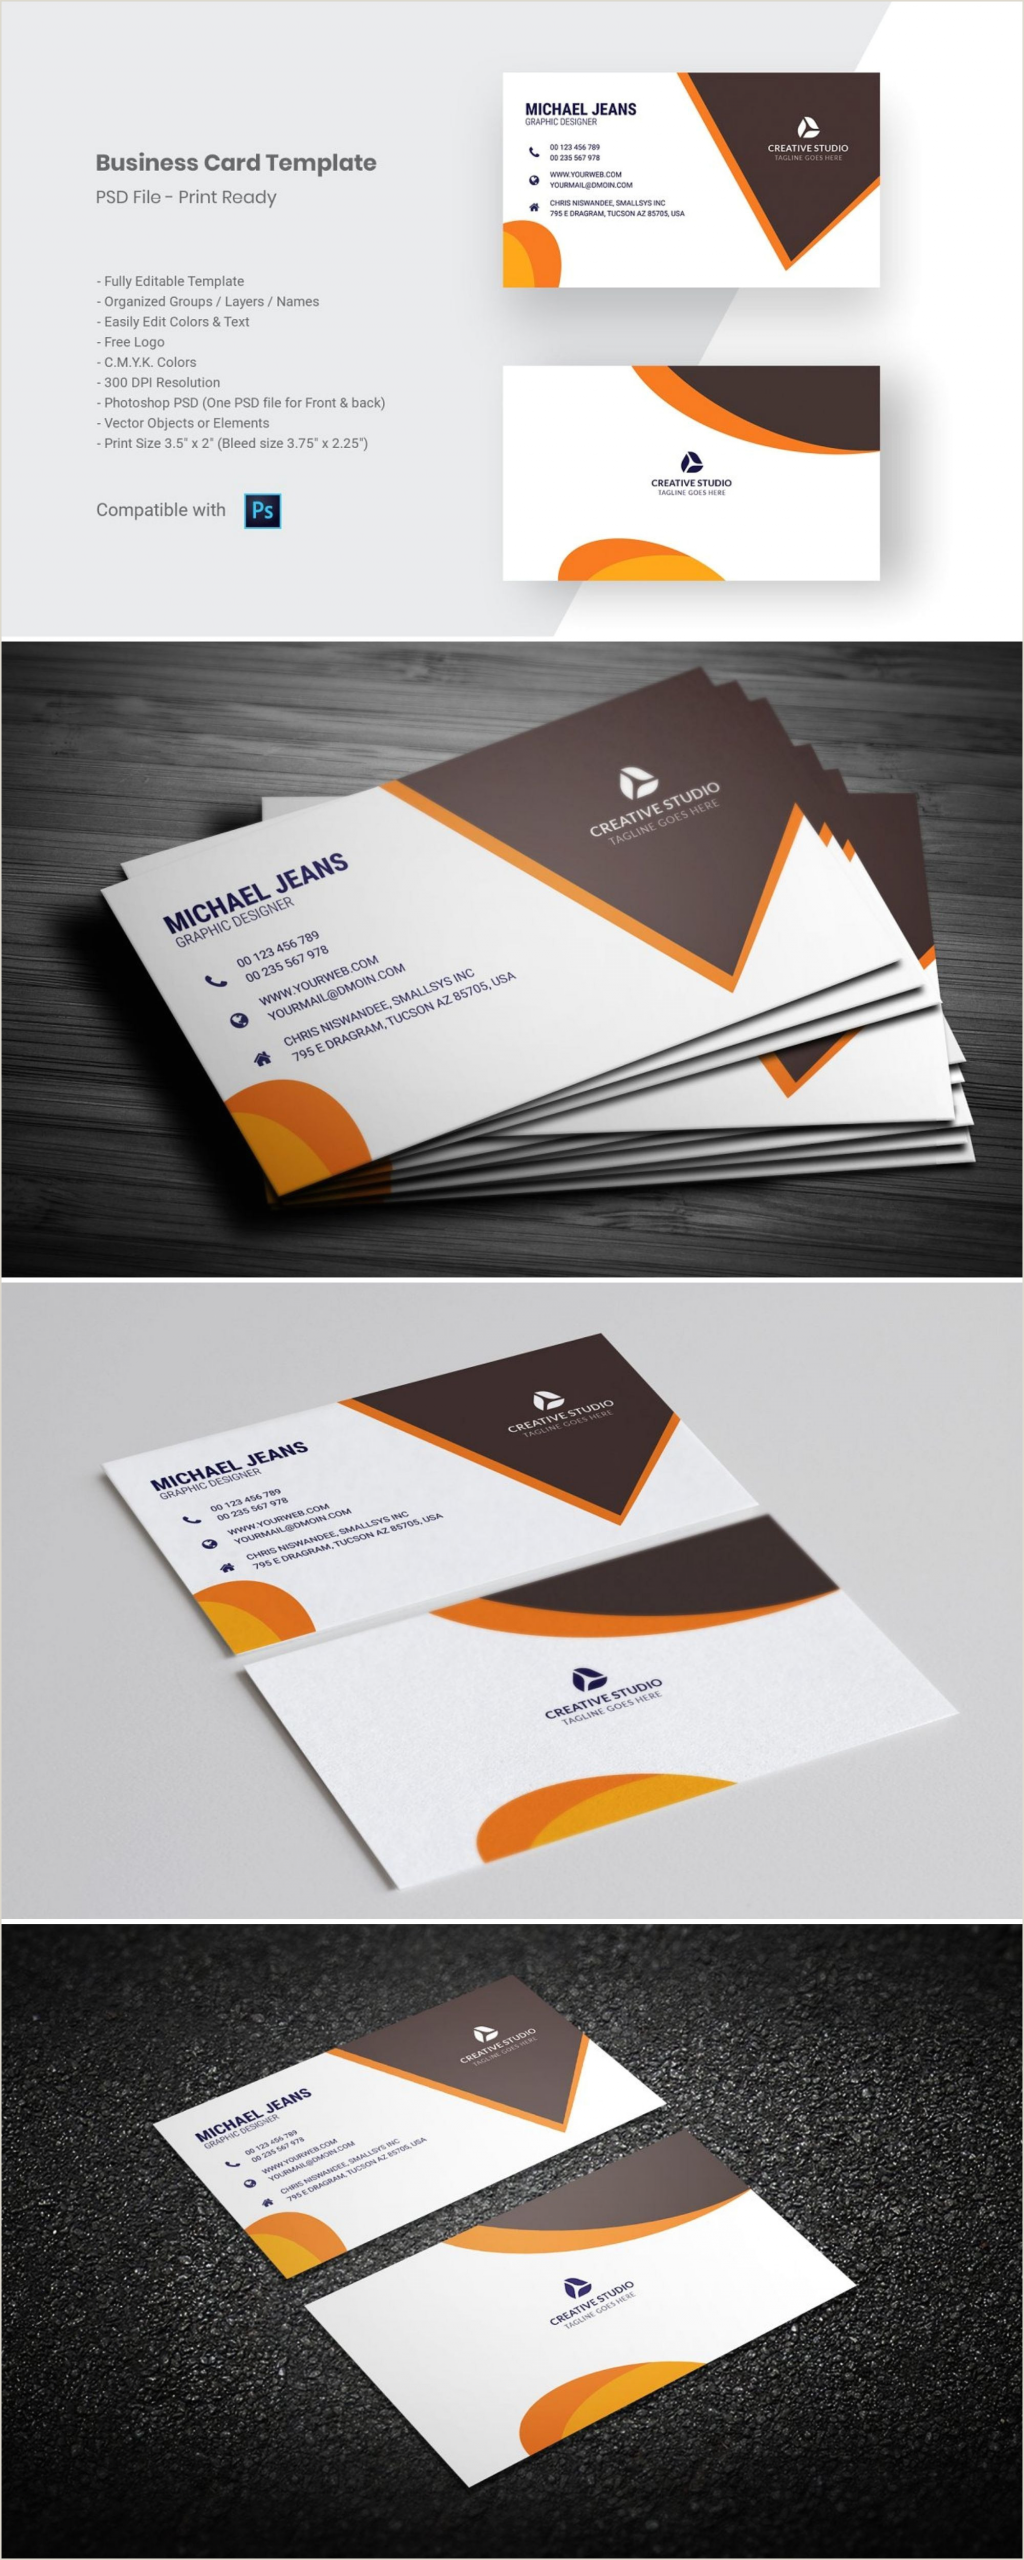 Unique Life Insurance Business Cards Samples Modern Business Card Template